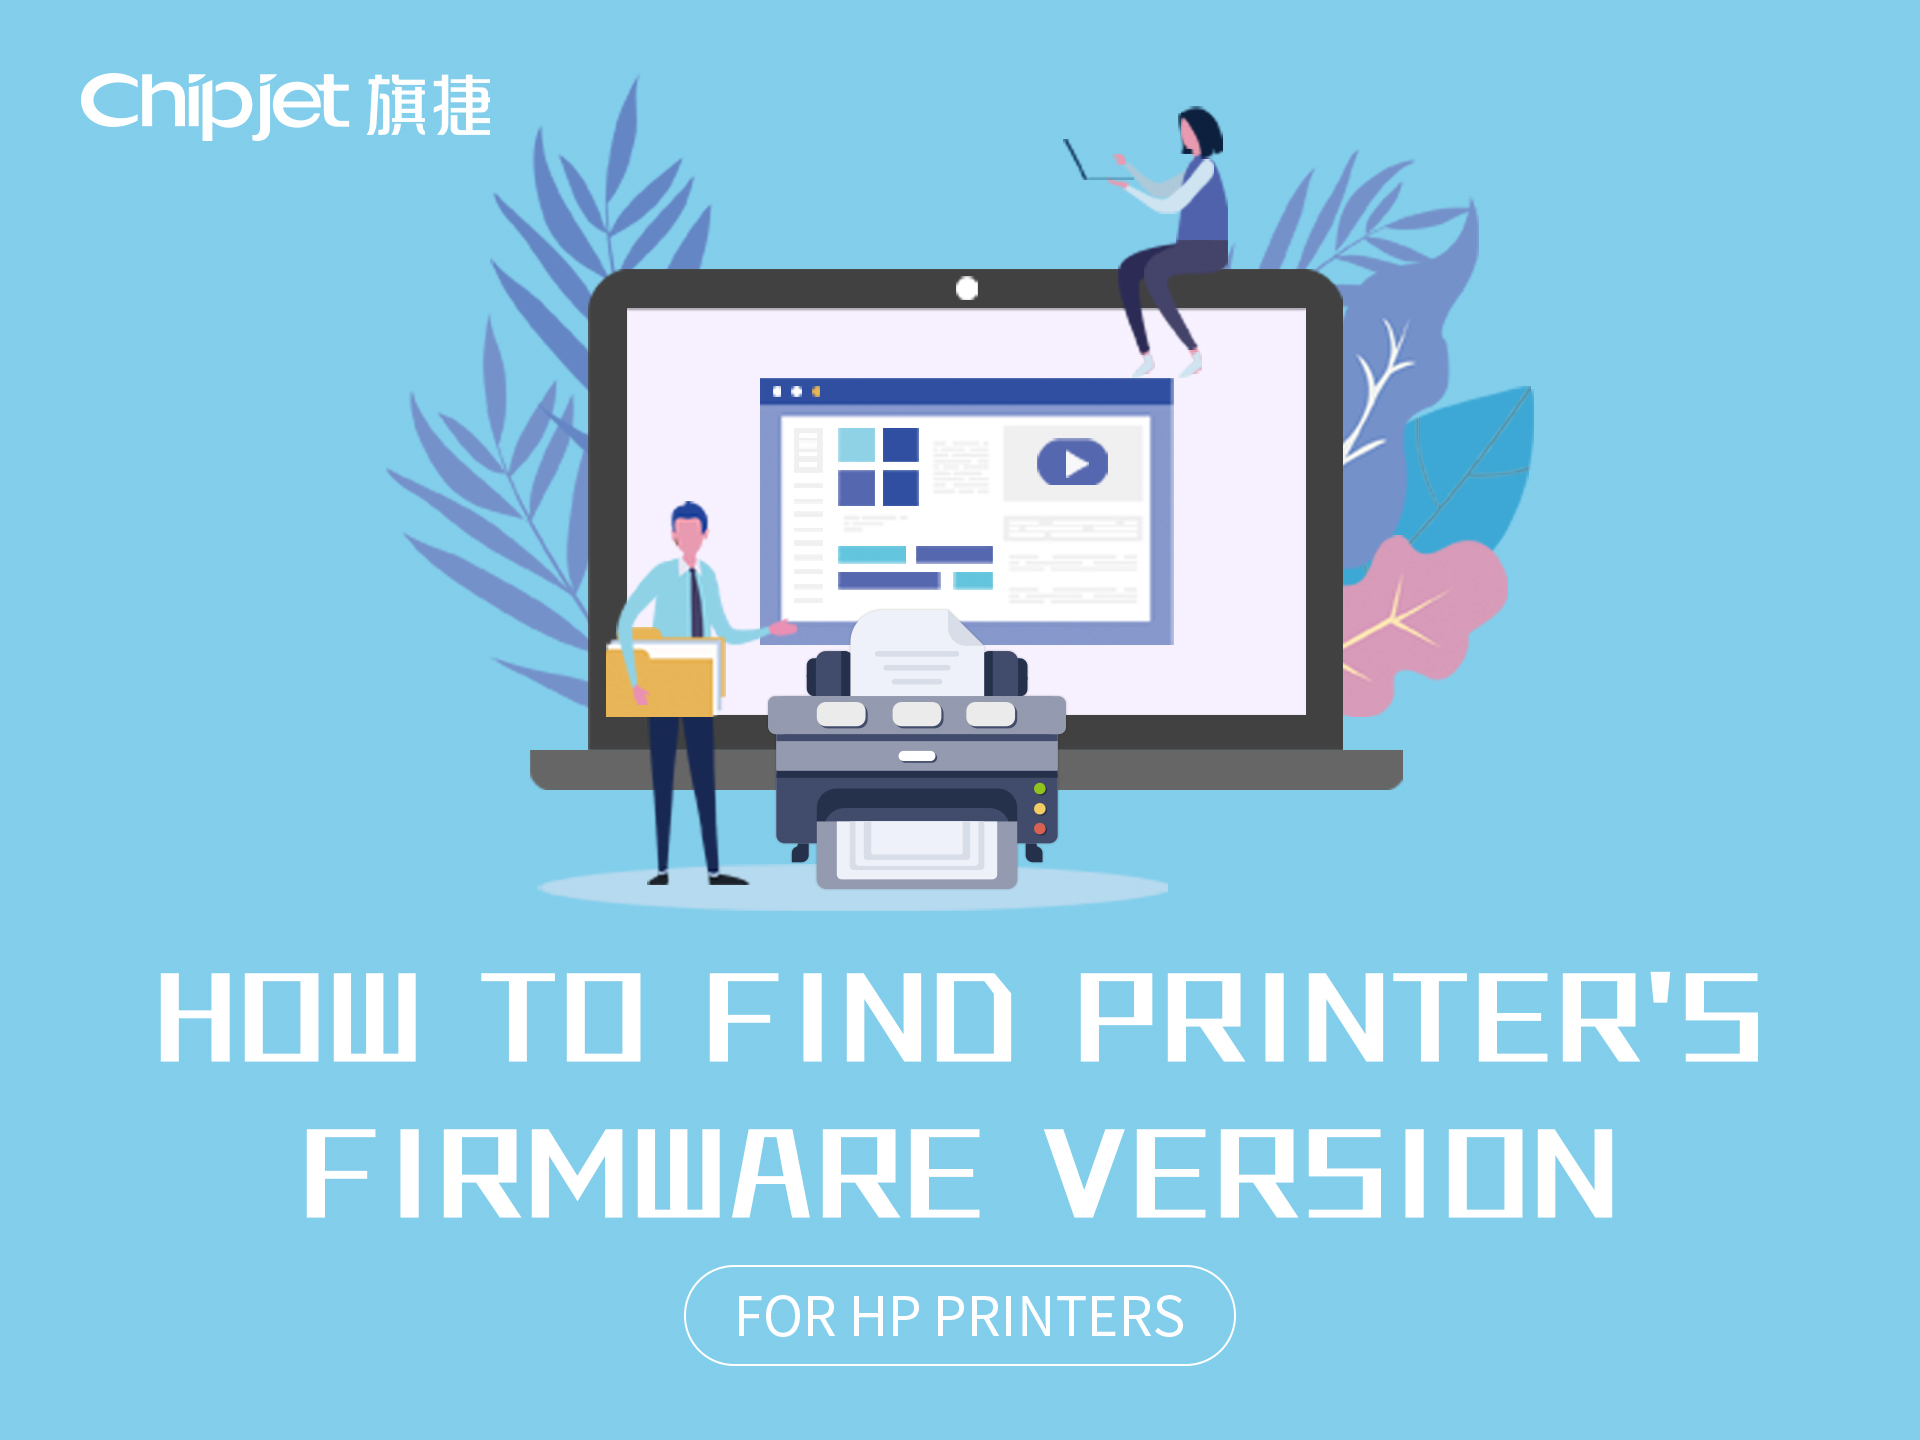 Chipjet Tips- Knowing Your HP Printers' Firmware Version is Non-negligible